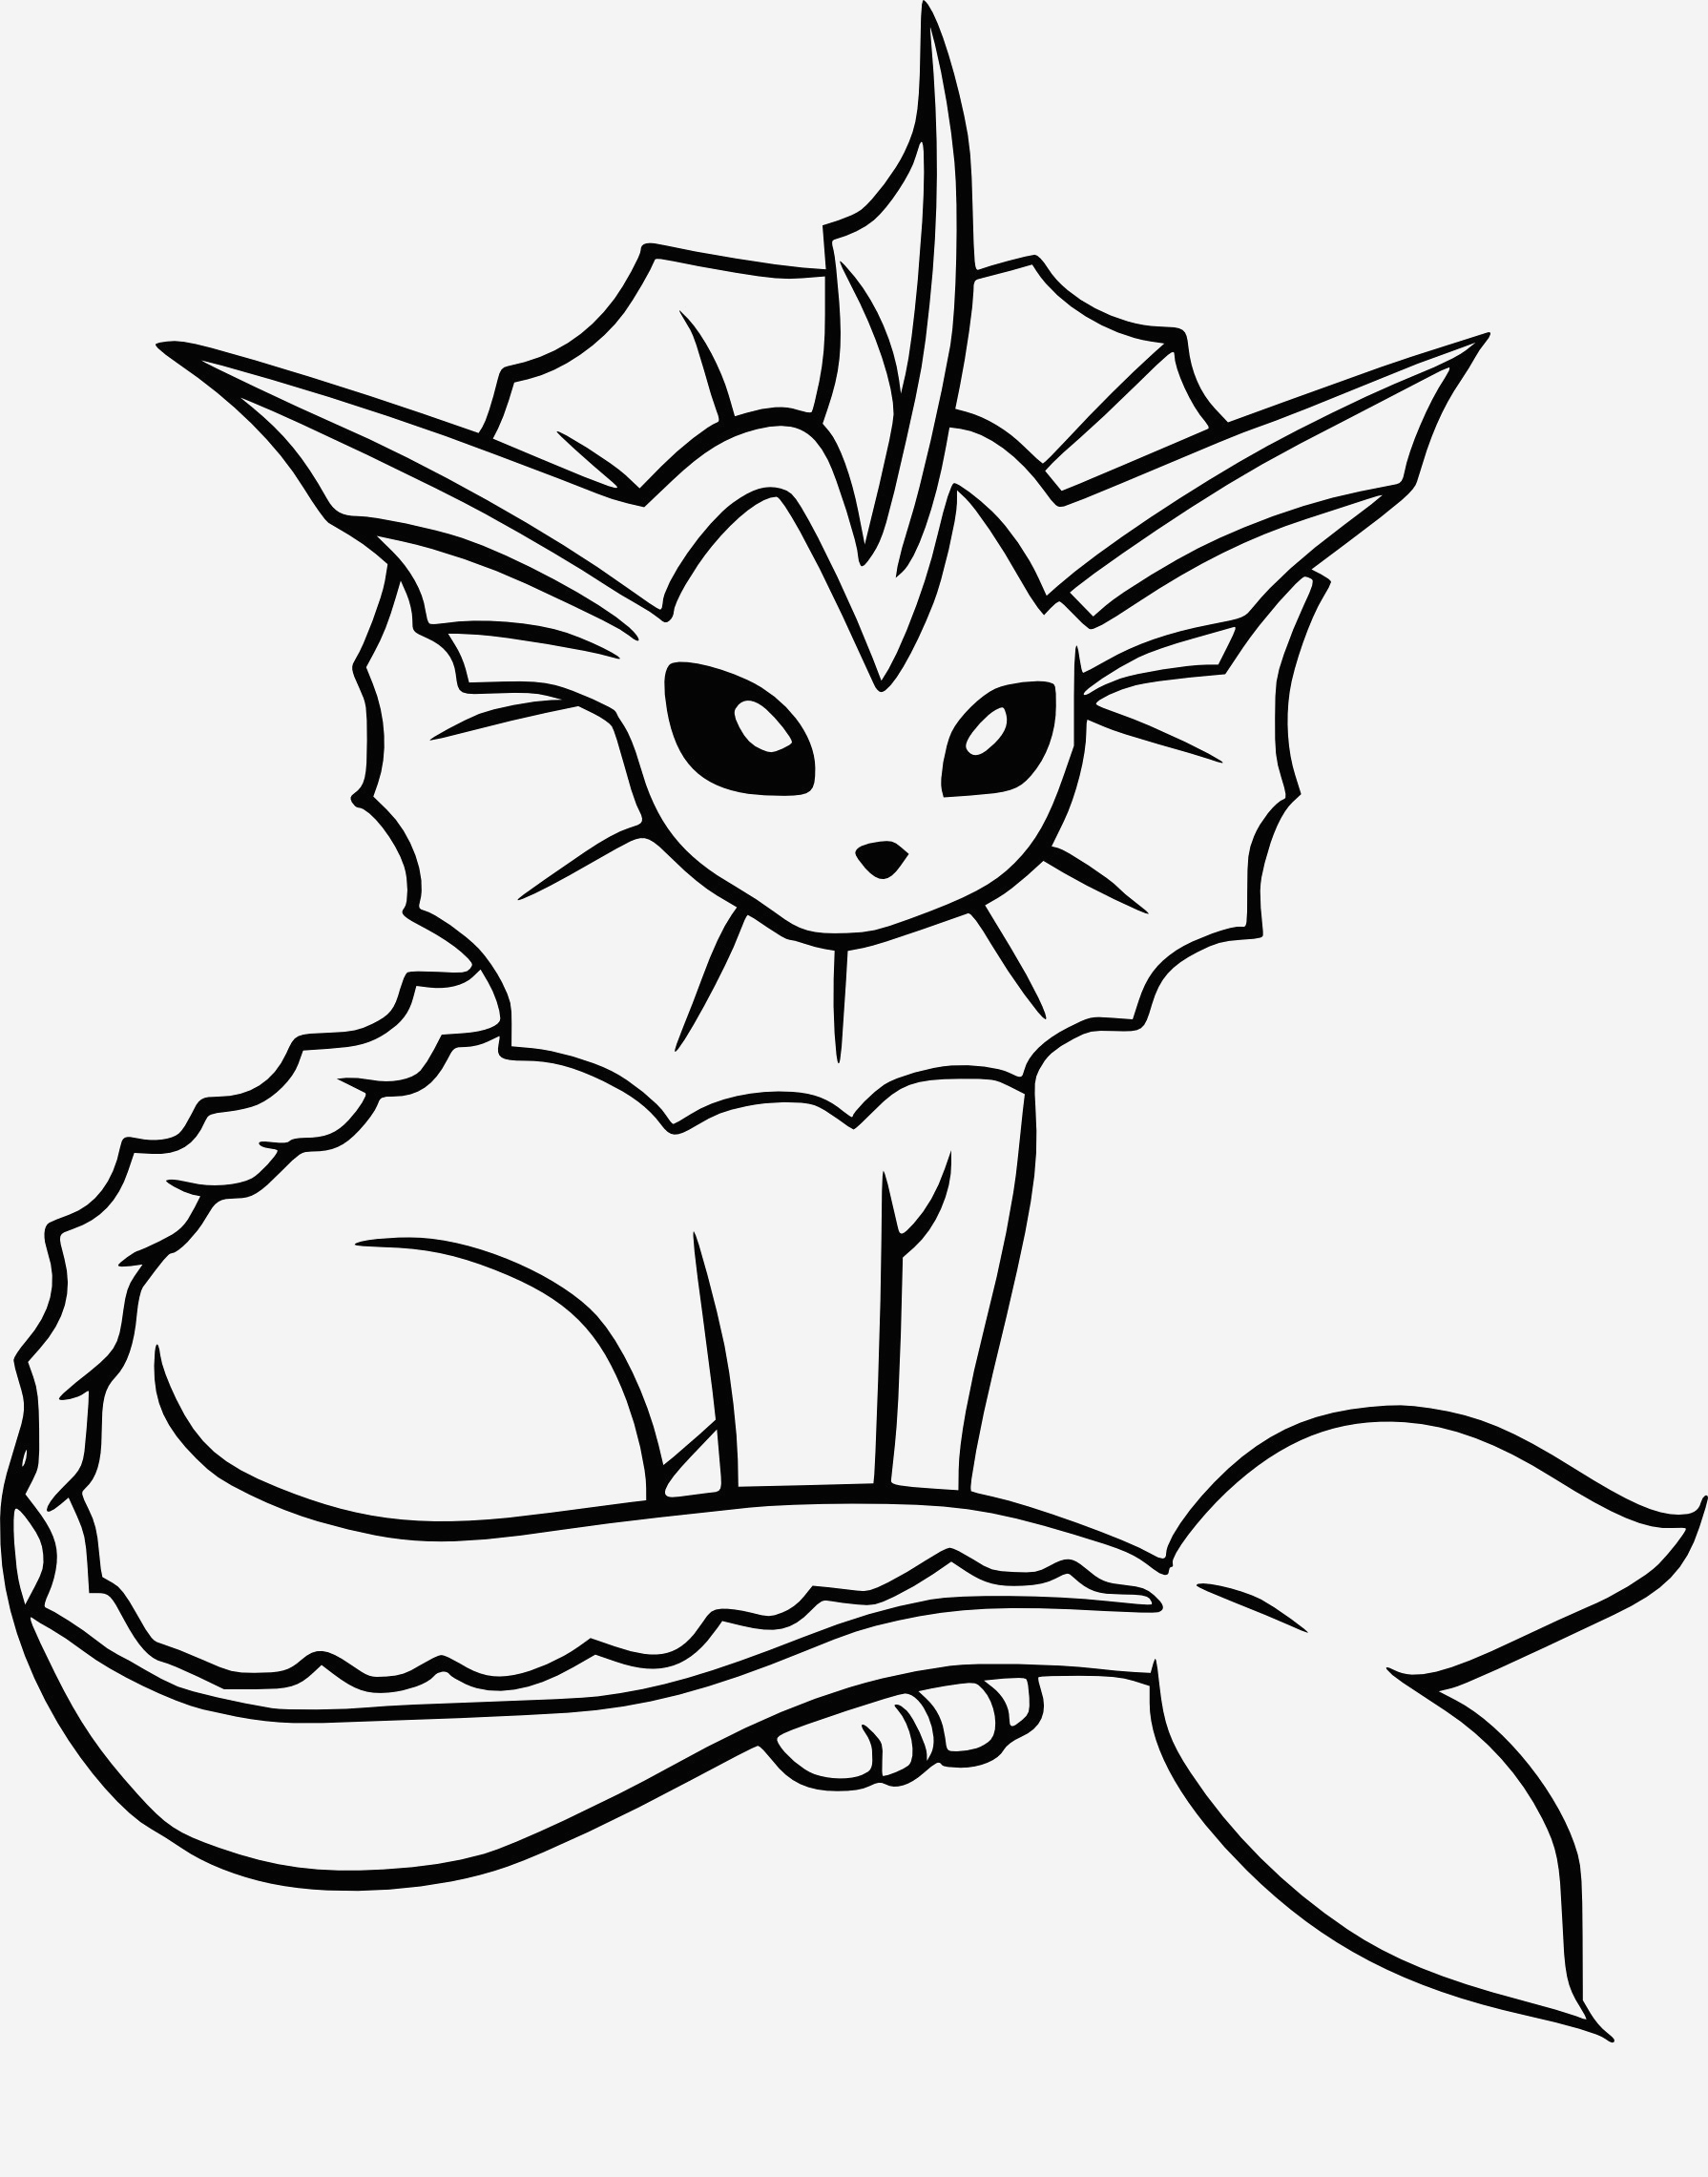 Coloriage Pokemon Evoli Fresh √ Coloriage Aquali Pokemon Imprimer Of Coloriage Pokemon Evoli